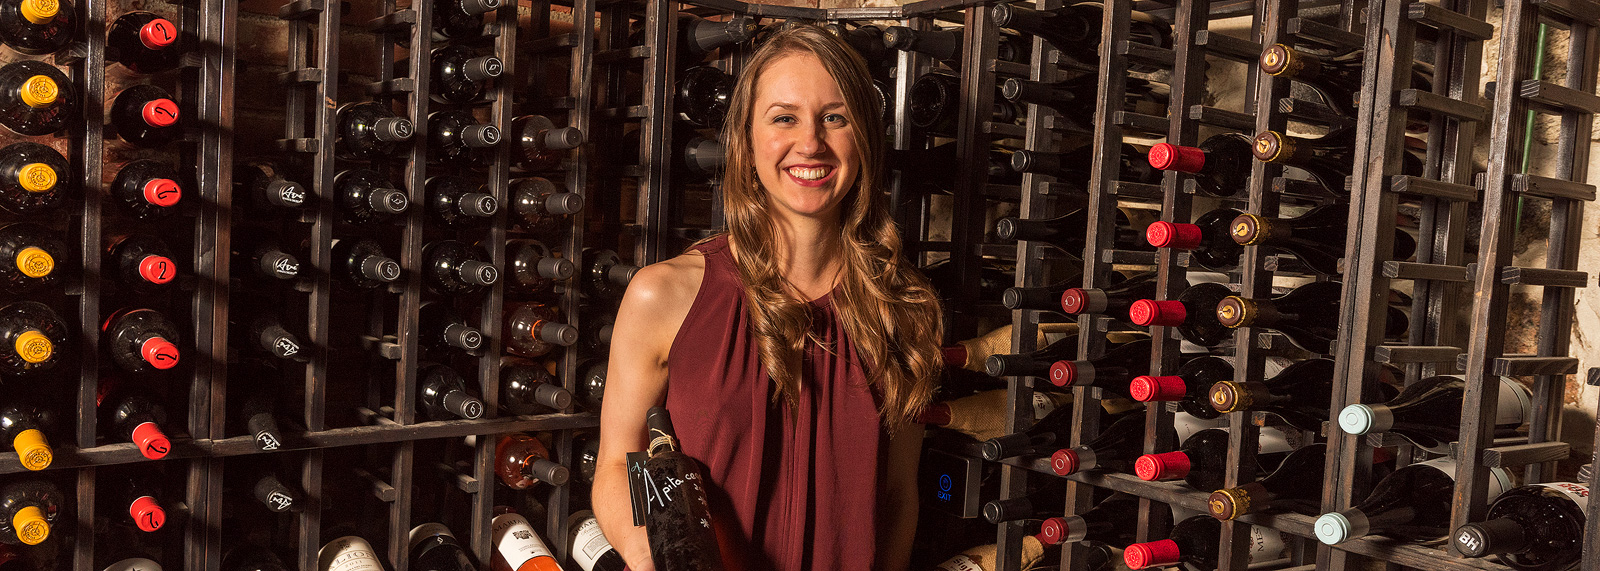 Kelsey Wonsavage in the Aventura Wine Cellar <span class=&apos;image-credits&apos;>Doug Coombe</span>